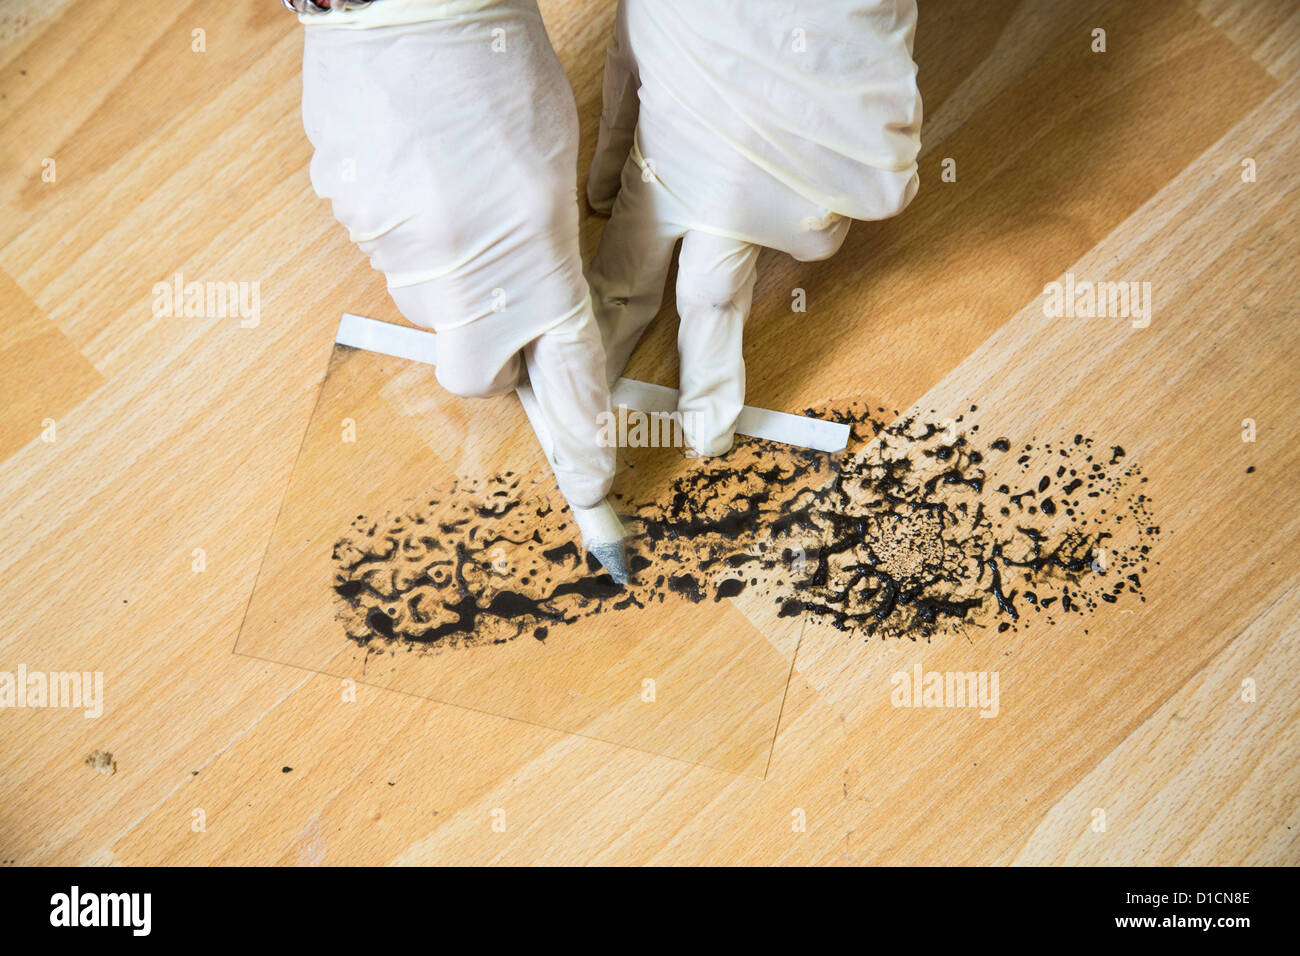 Police crime scene unit. Securing of evidences. saving a footprint, shoe print with a foil. - Stock Image